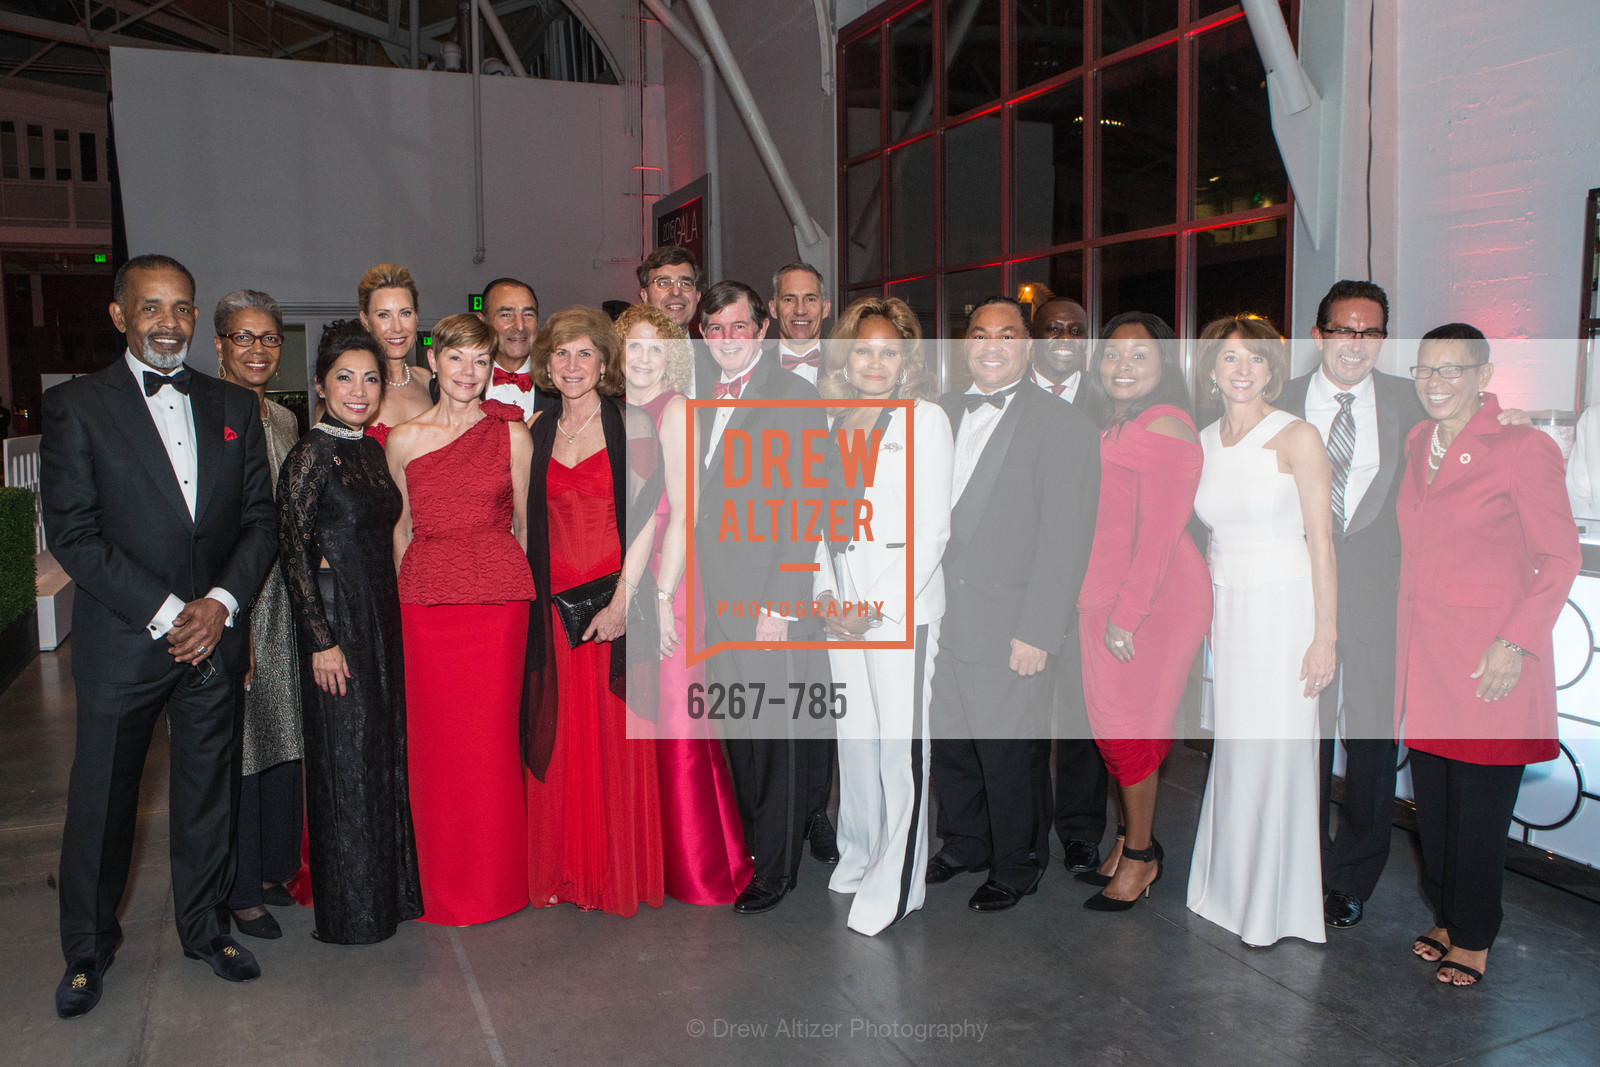 Joe Madison, Sharon Madison, Quinn Tran, Carolyn Mehran, Alexander Mehran, Paula Downey, Sarah Earley, Gail McGovern, Anthony Earley, Janice Bryant Howroyd, Mark Cloutier, Teresa Briggs, Carlton Bryant, Rose White, Keith White, Donna Duay, 2015 RED CROSS Gala, US, April 12th, 2015,Drew Altizer, Drew Altizer Photography, full-service agency, private events, San Francisco photographer, photographer california